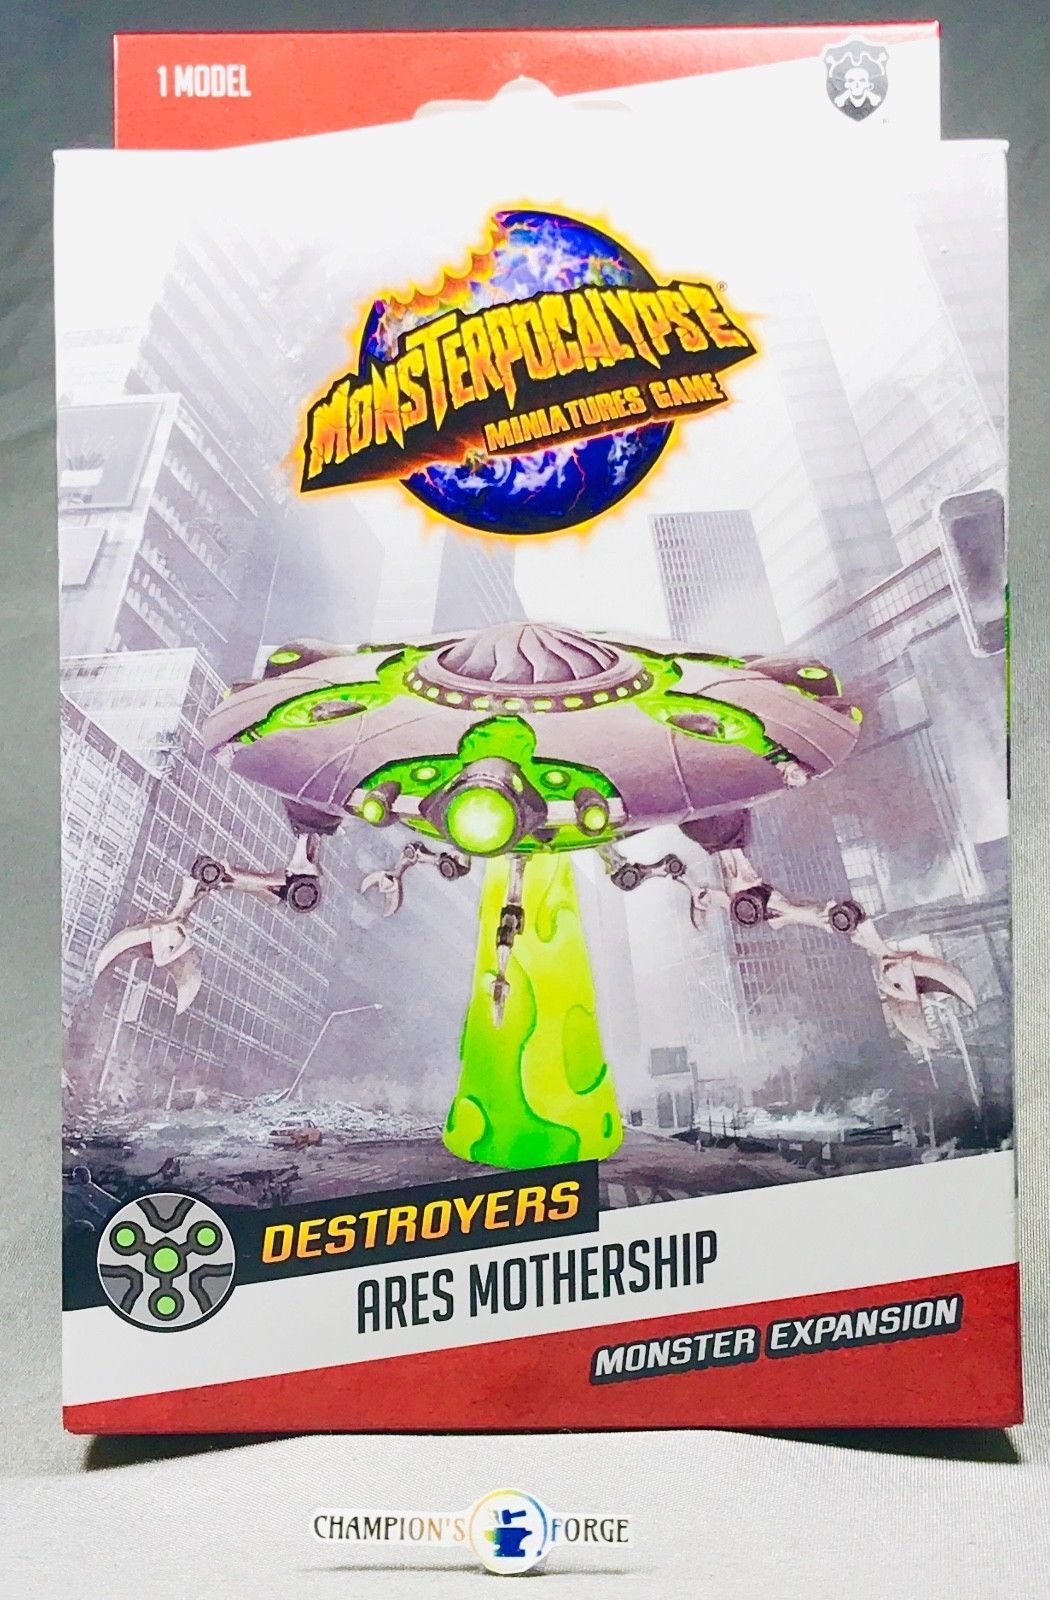 Monsterpocalypse 168253 Monsterpocalypse Ares Mothership Pip 51013 Free Shipping Buy It Now Only 20 95 On Ebay M Ebay Miniatures The Expanse